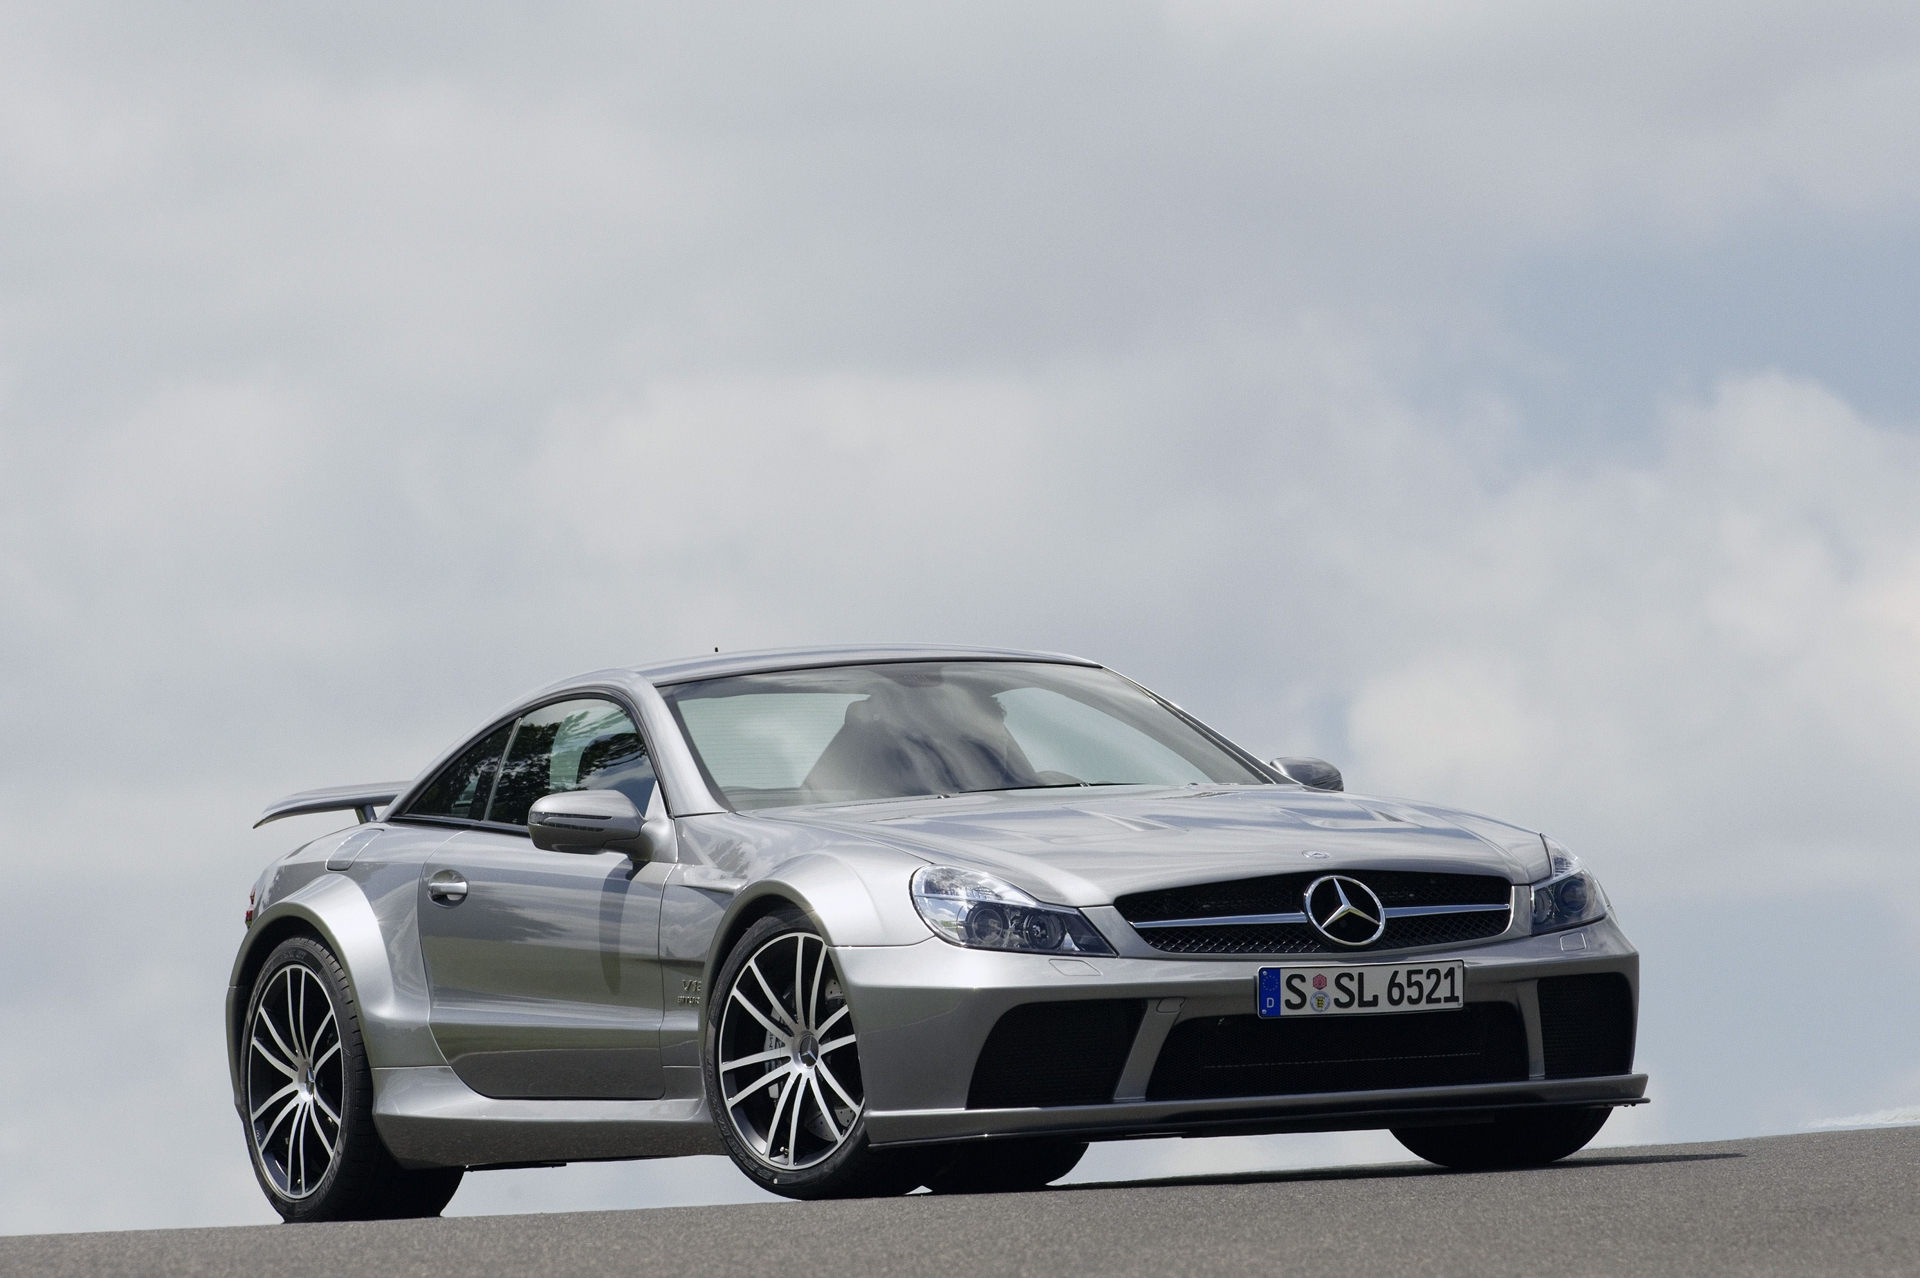 Mercedes-Benz SL 65 AMG Black Series 2008